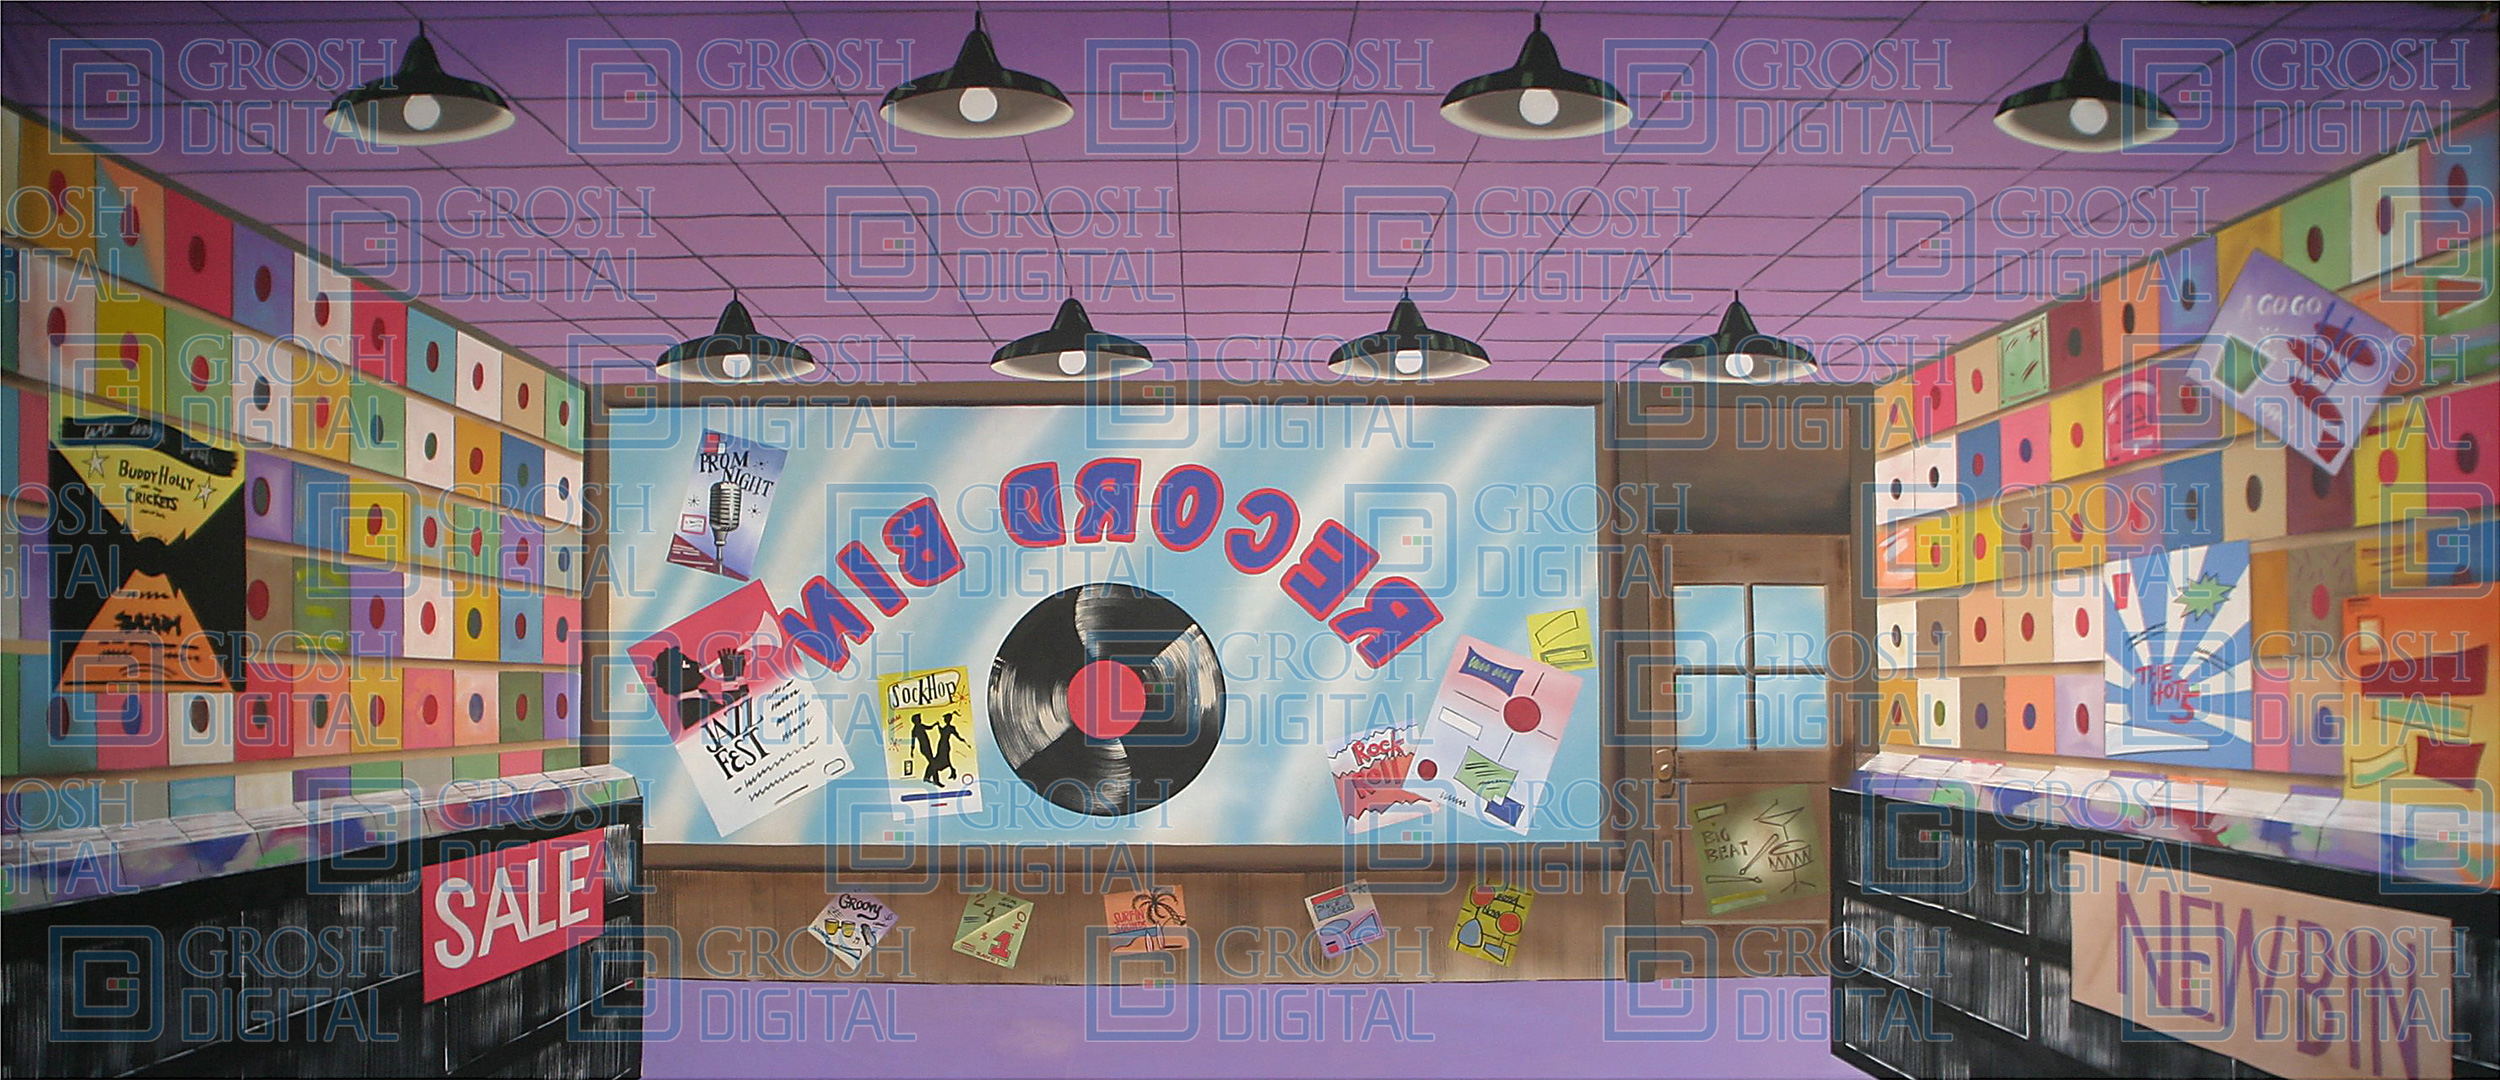 Record Store Projected Backdrop for Footloose, Grease, Hairspray, Interiors